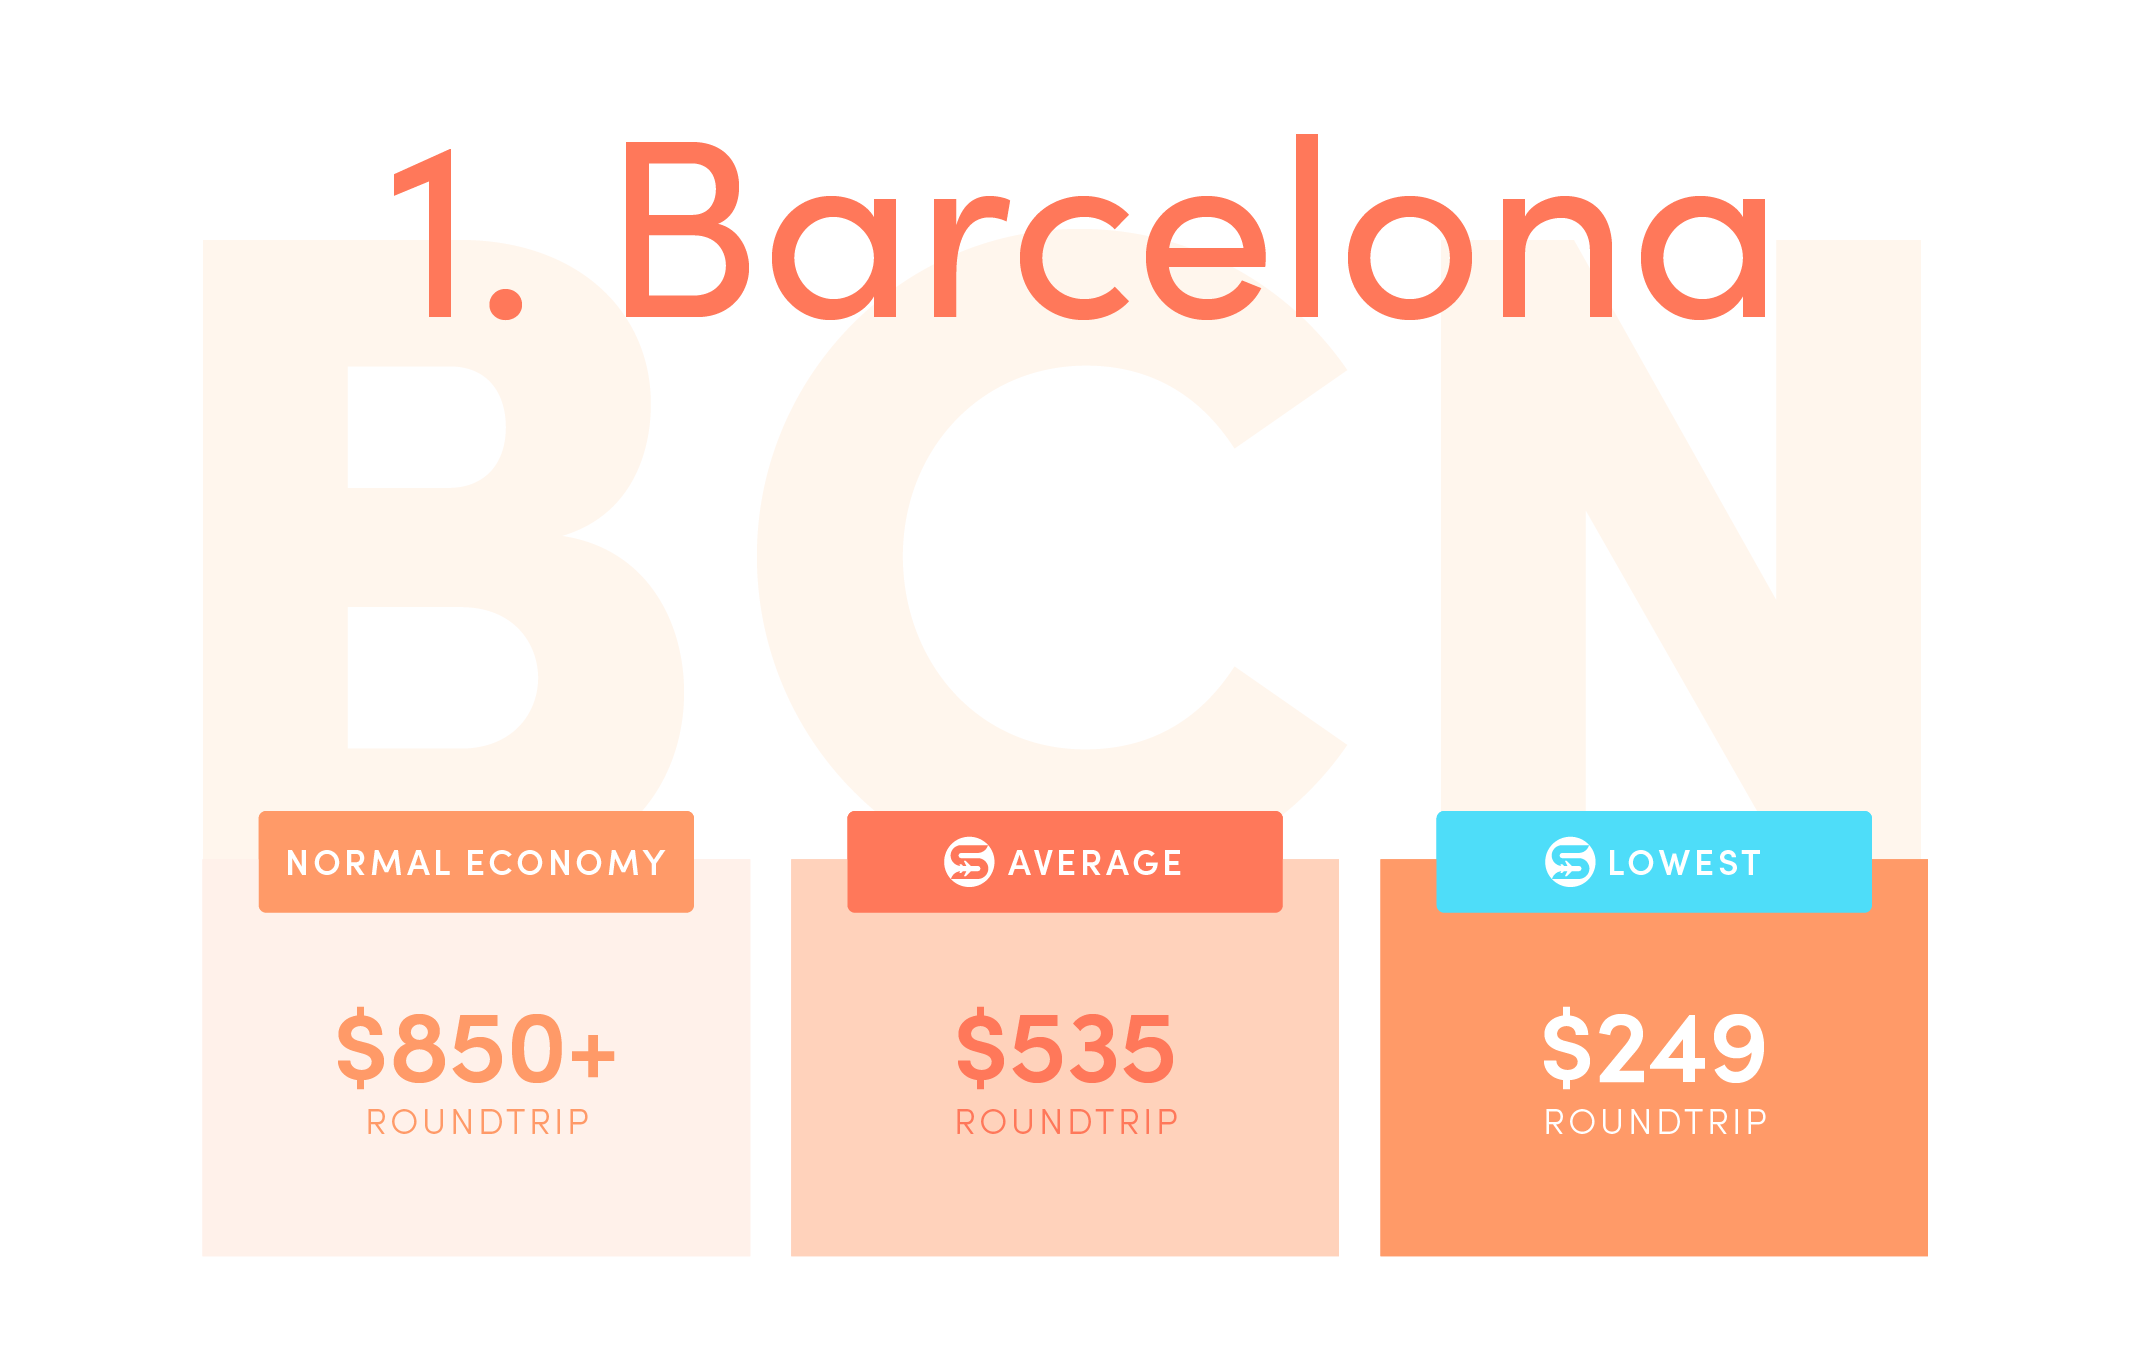 Barcelona (BCN). Normal economy price from the US: $850+ roundtrip. Average Scott's Cheap Flights economy price: $535 roundtrip. Lowest Scott's Cheap Flights price in 2021: $249 roundtrip.